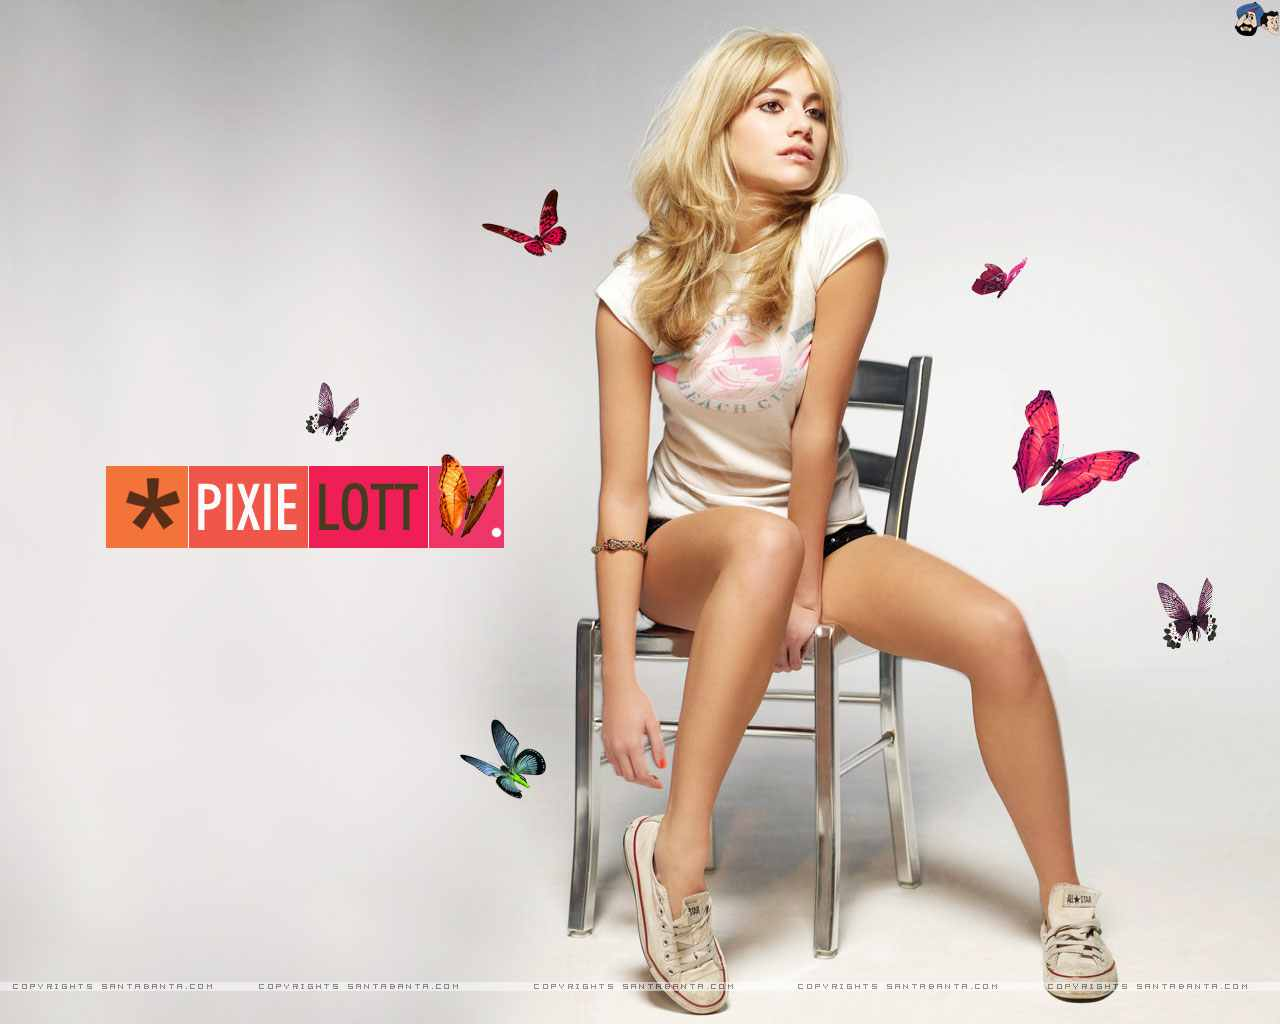 lott single girls Pixie lott peforming her 2nd uk number 1 single 'boys and girls' for a tmf session turn it up the album is out now follow us on twitter: http://twitter.